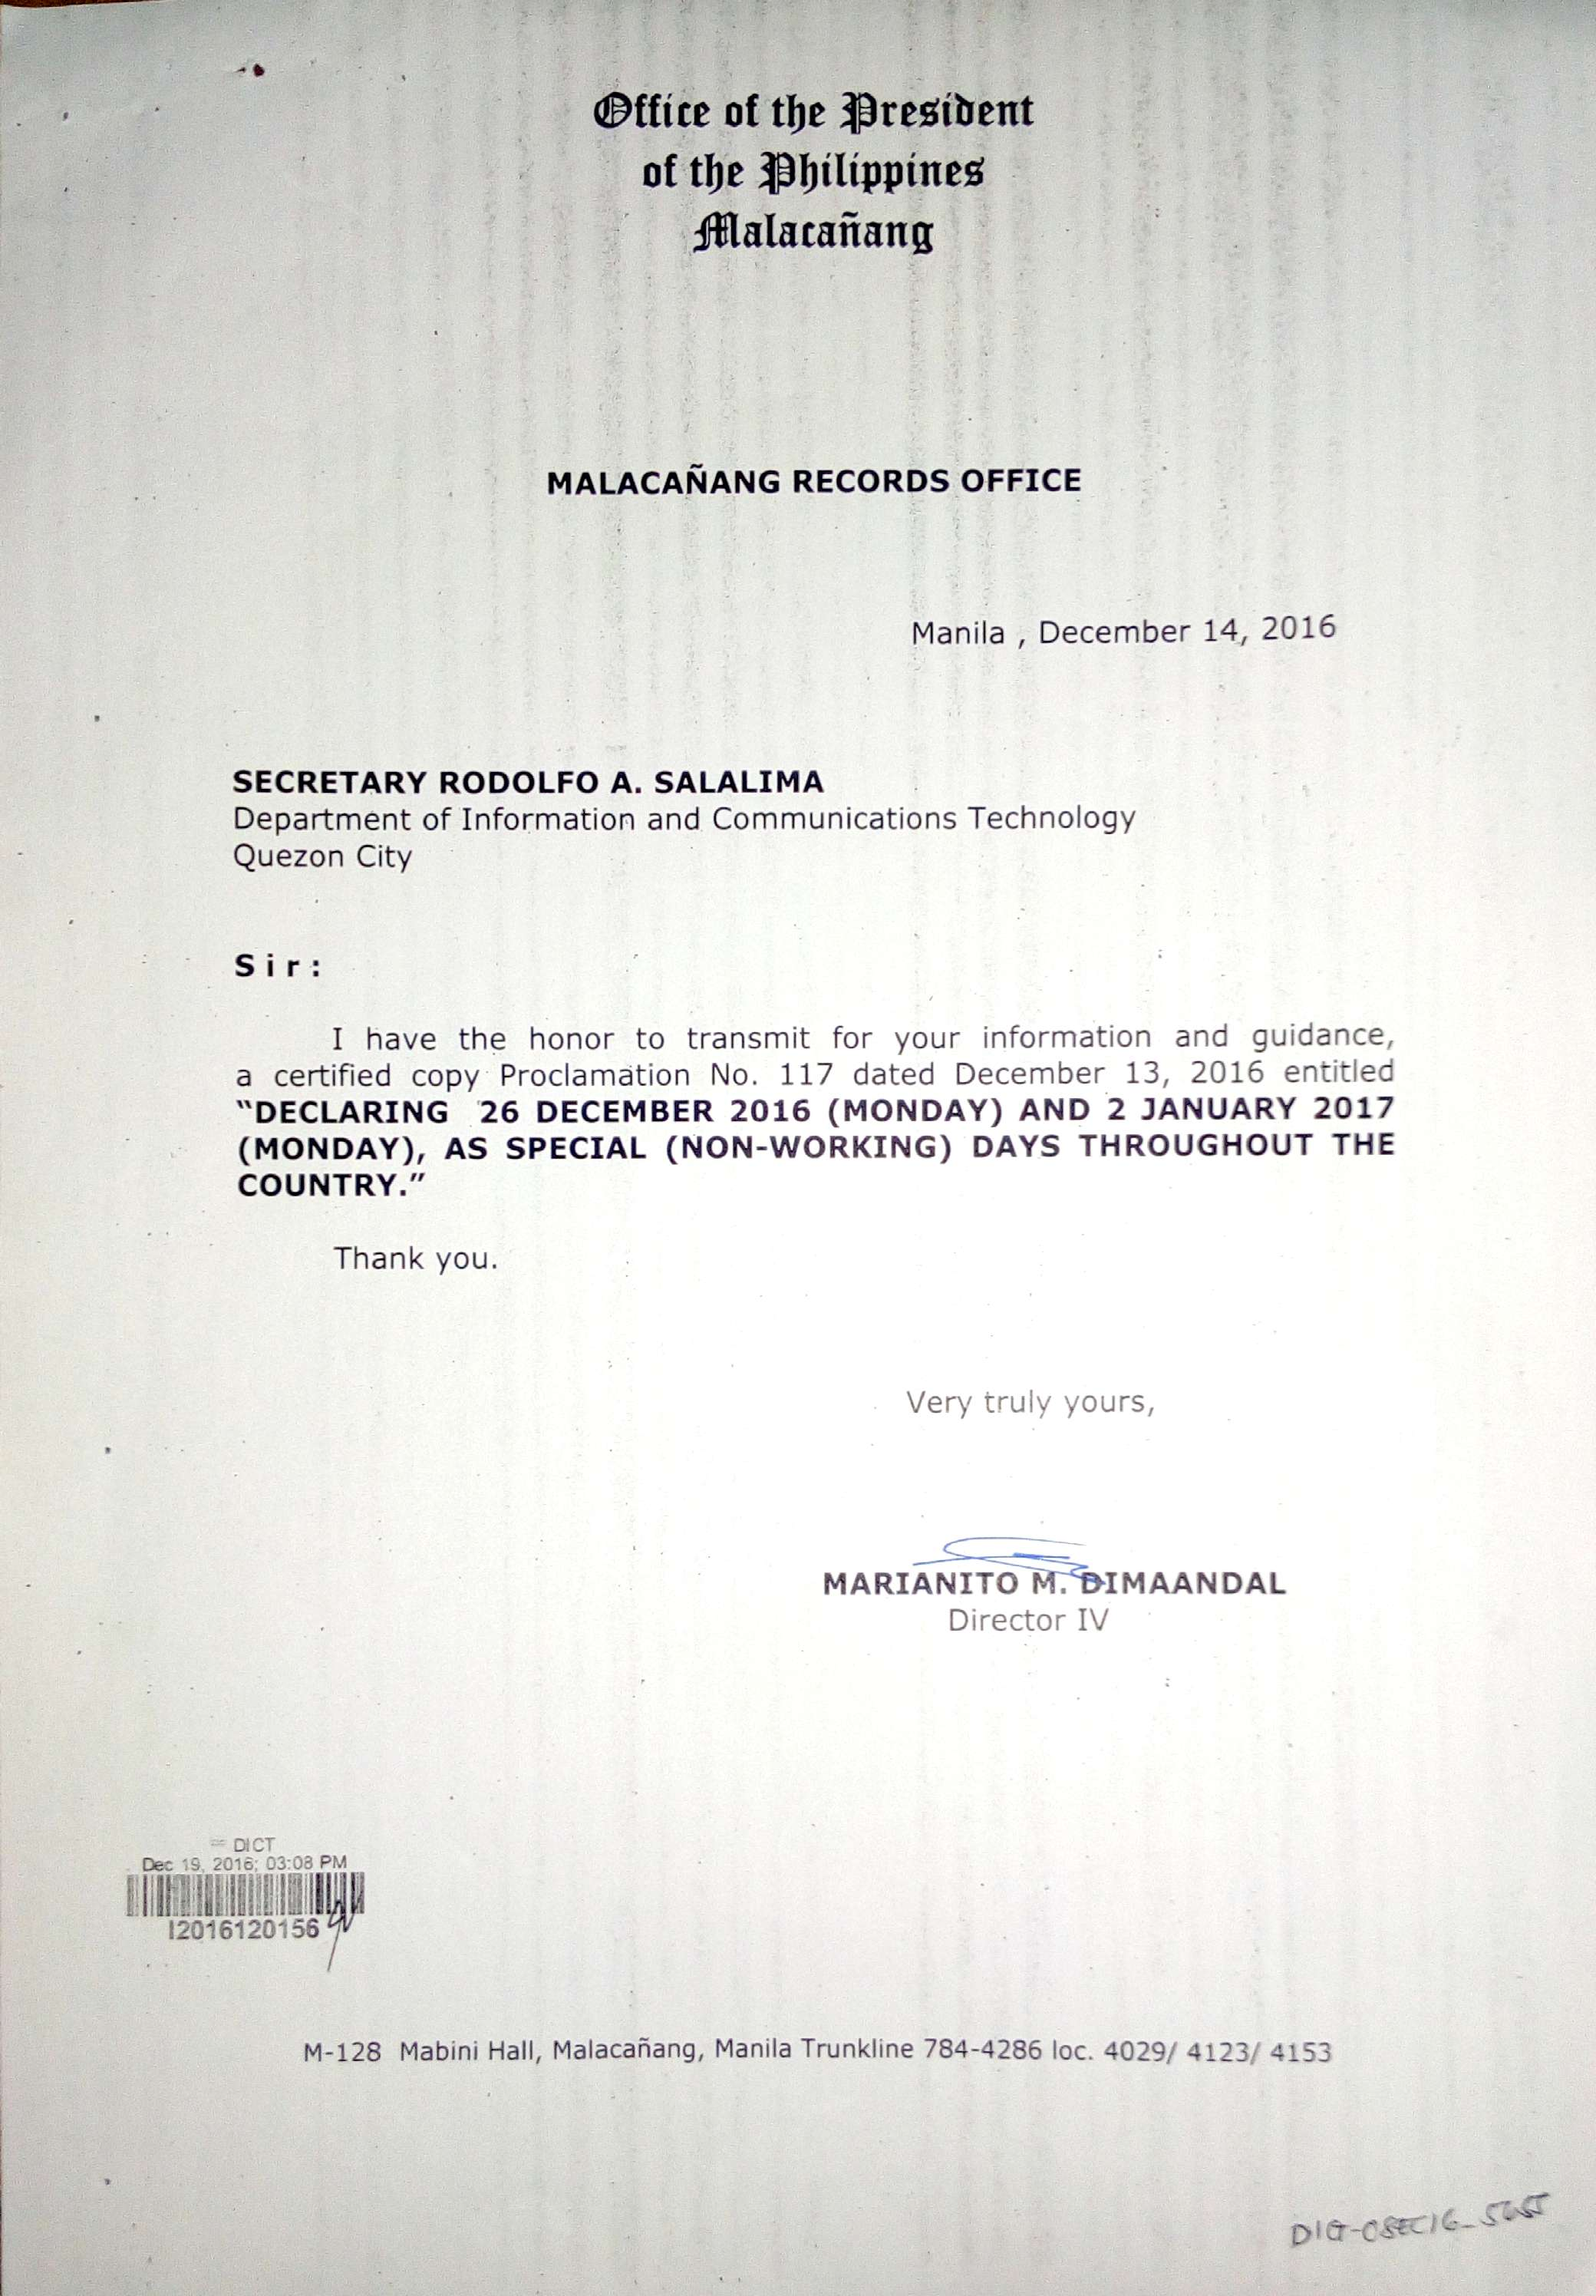 public announcement 26 december 2016 and 2 january 2017 declared as